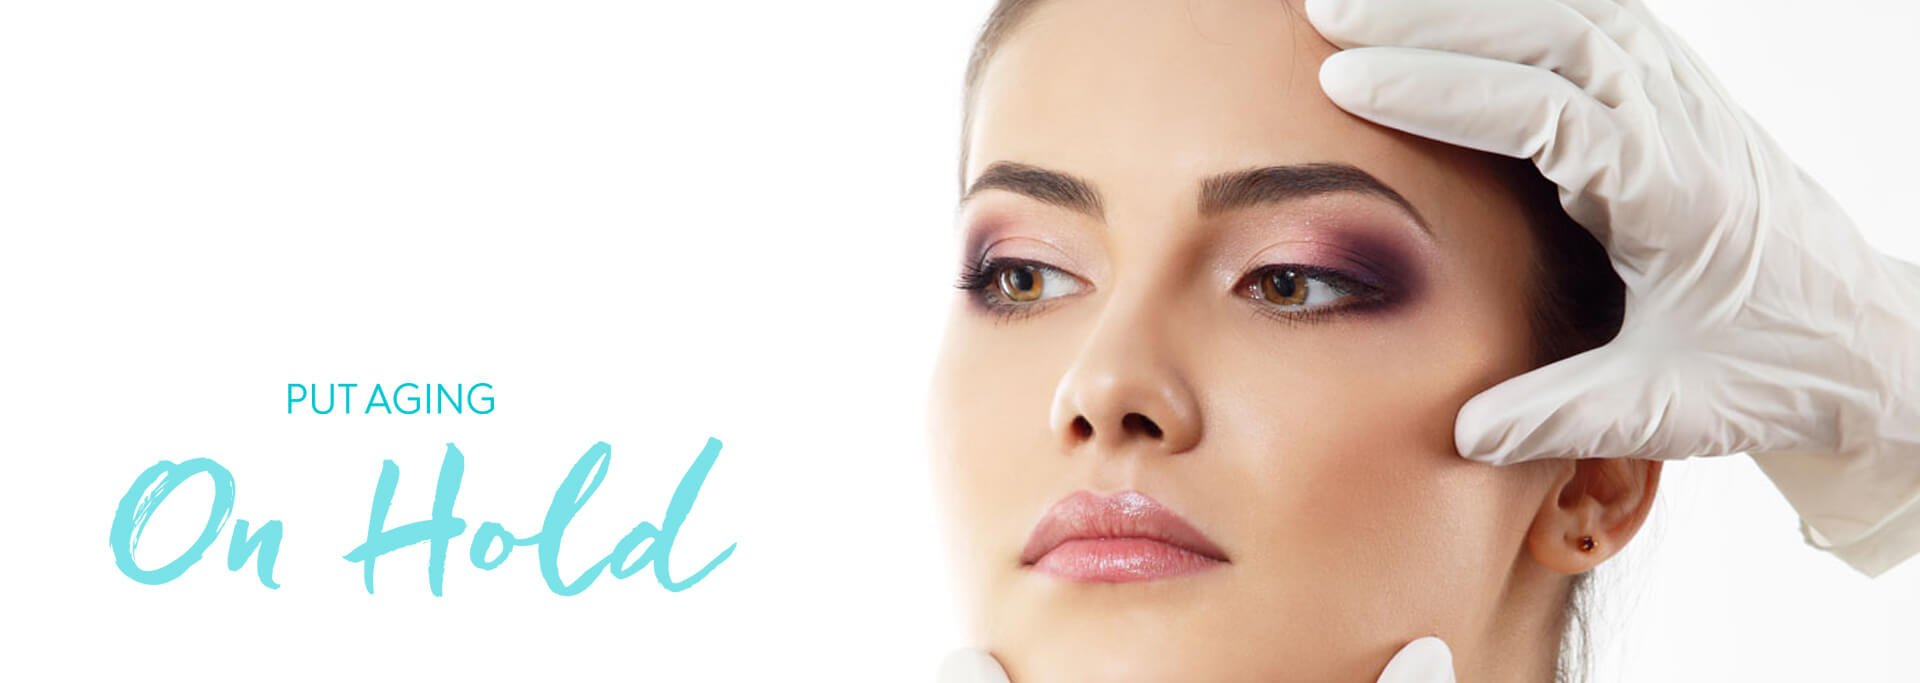 Tampa Dermal Fillers & Injectables: Prices & Info | Arviv Medical